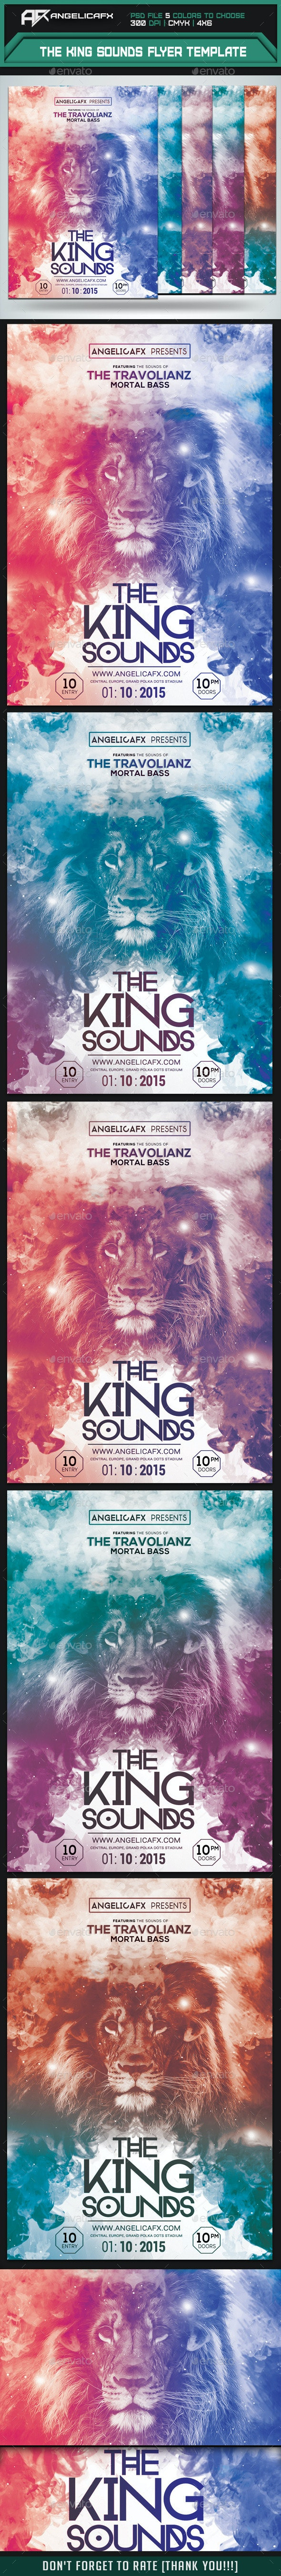 The King Sounds Flyer Template - Clubs & Parties Events